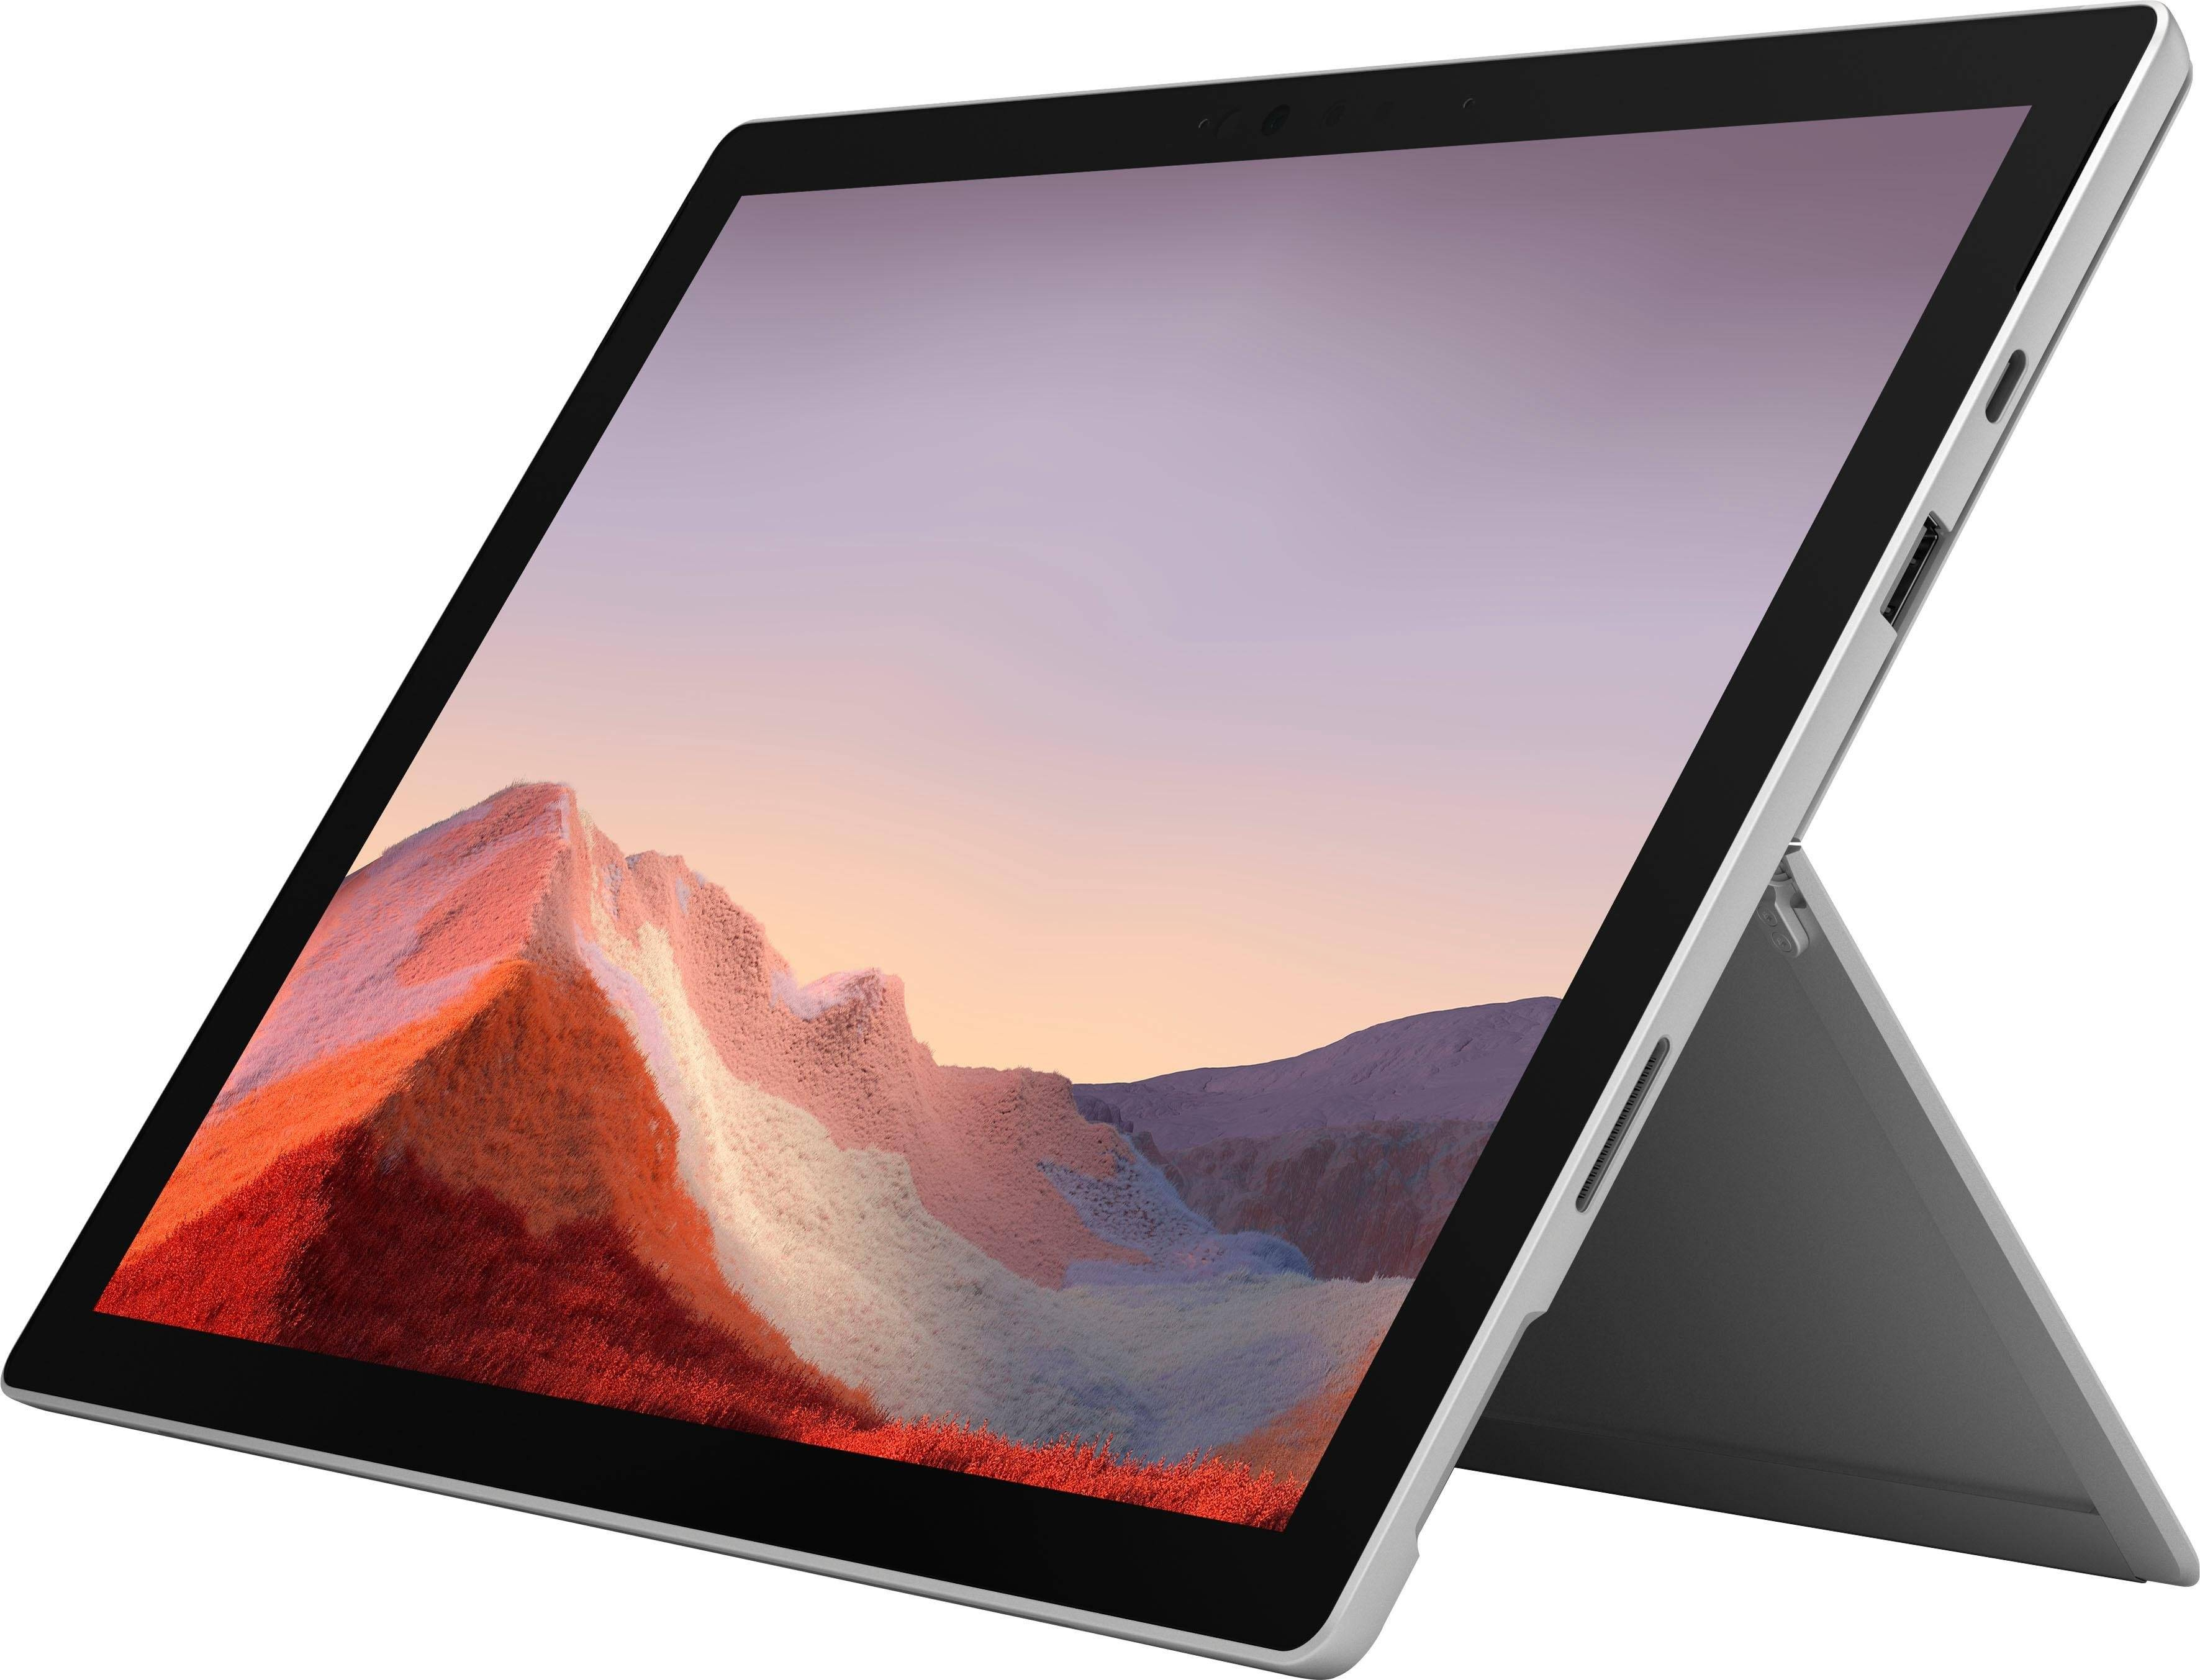 Microsoft Surface Pro 7 - 16GB / 256GB i5 Platin Convertible Notebook (31 cm/12,3 Zoll, Intel Core i5, Iris Plus Graphics, 256 GB SSD, inkl. Office-Anwendersoftware 365 Single im Wert von 69 Euro)